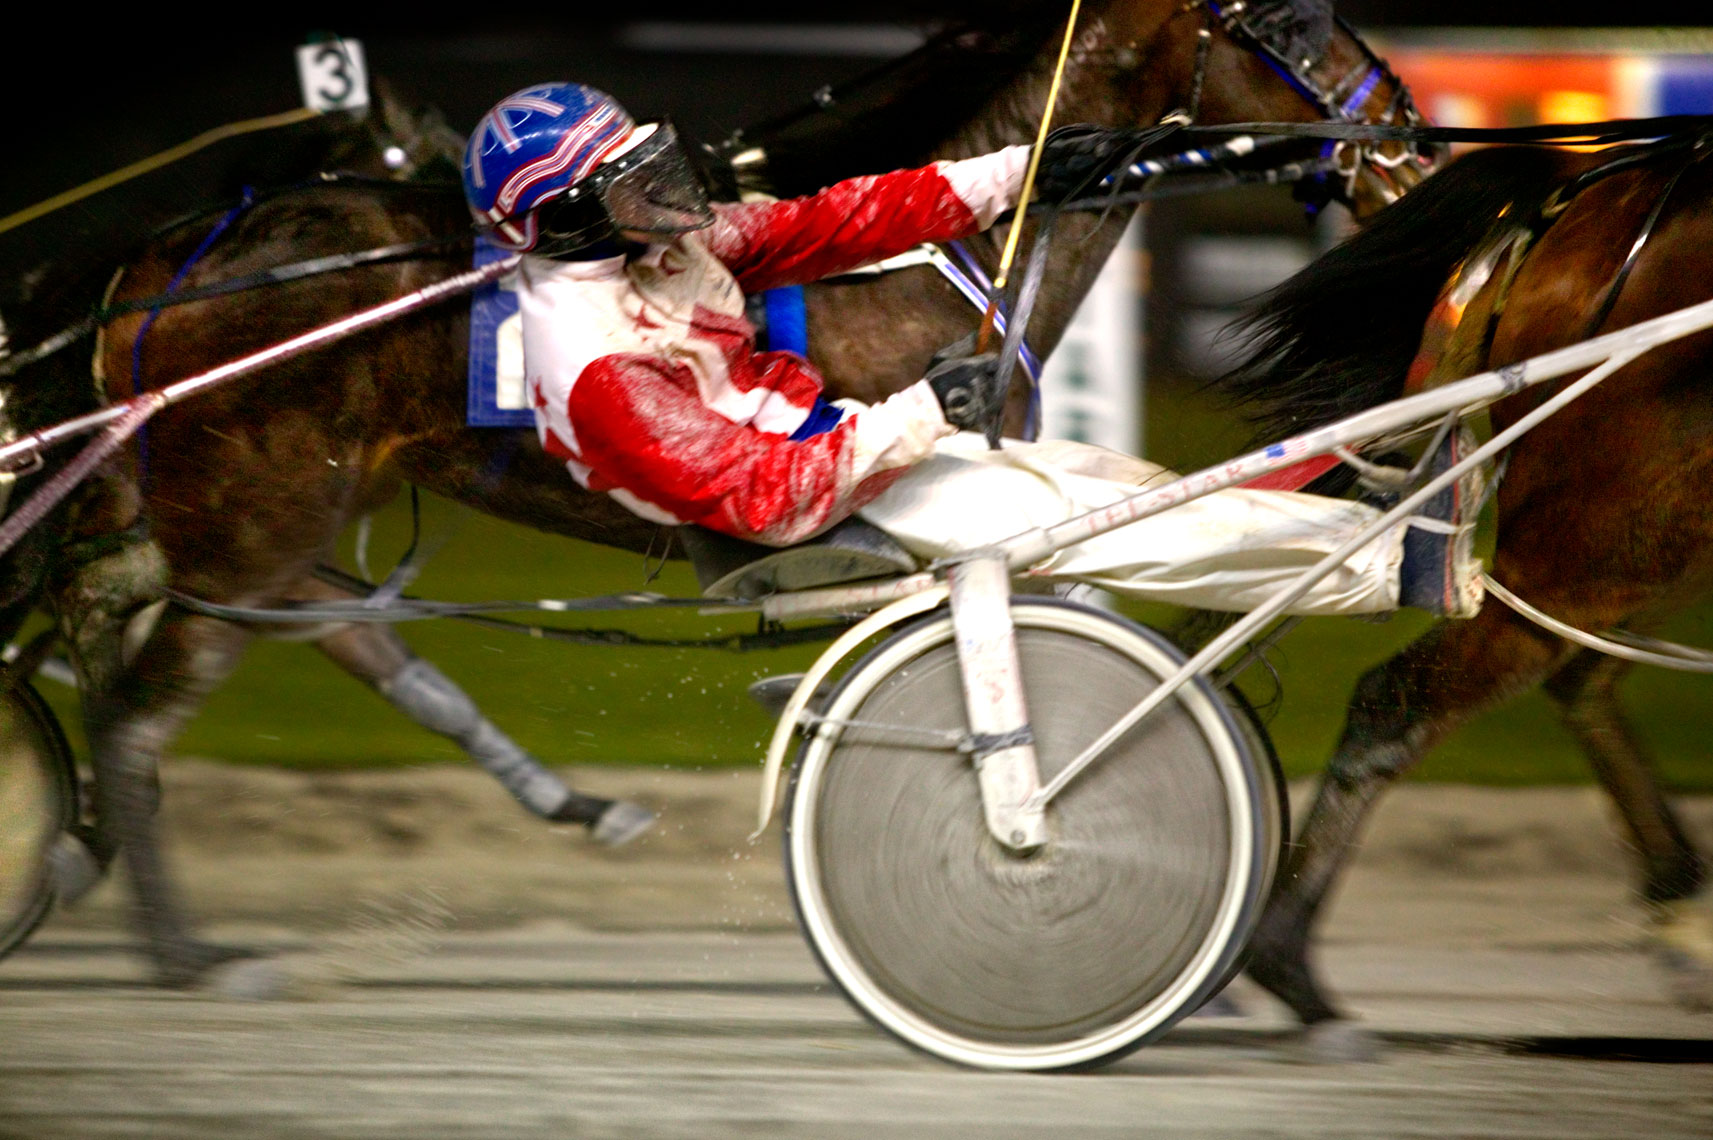 Harness Racing_014| Robert Randall Advertising Photographer, Commercial Photographer, CGI, Portrait, and Lifestyle Photography